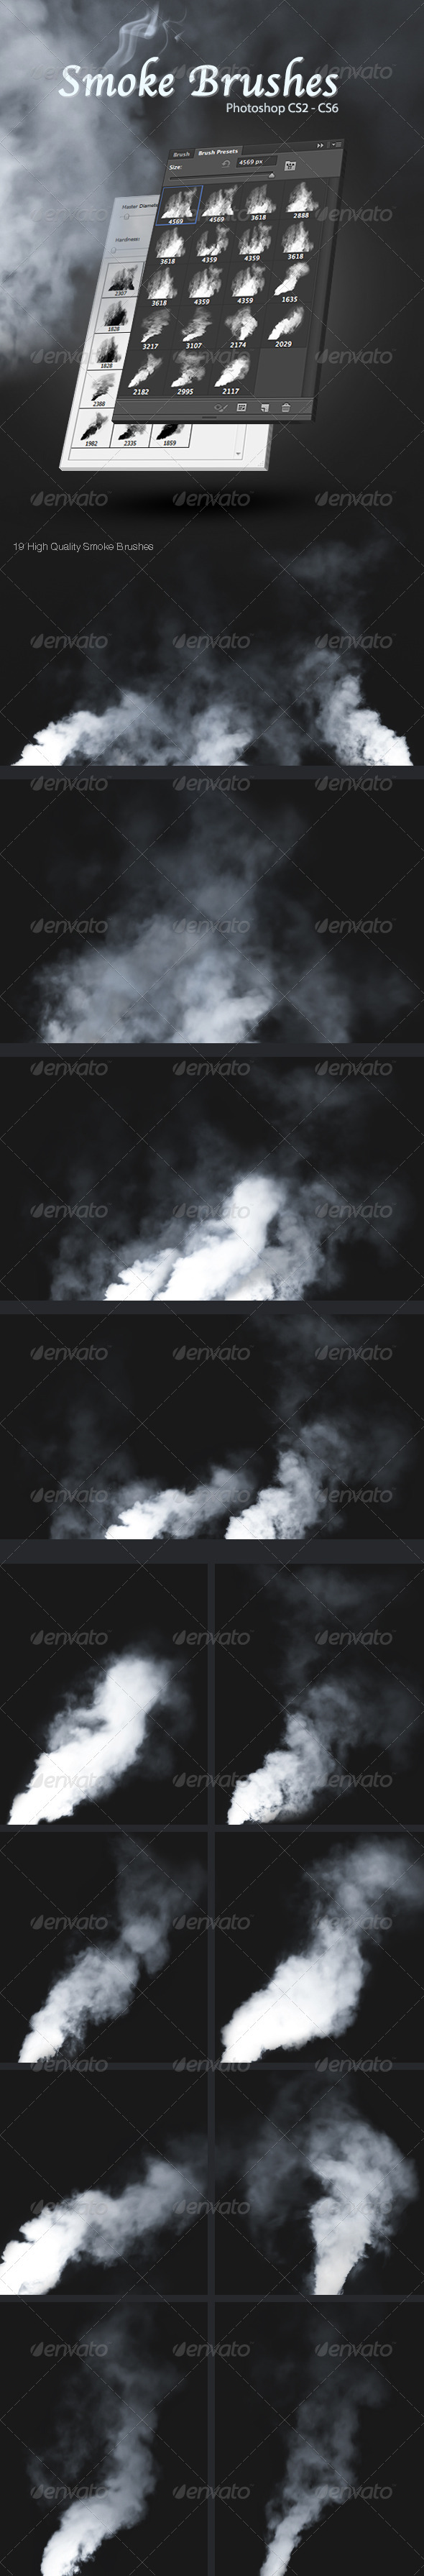 GraphicRiver Smoke Brushes 3594633